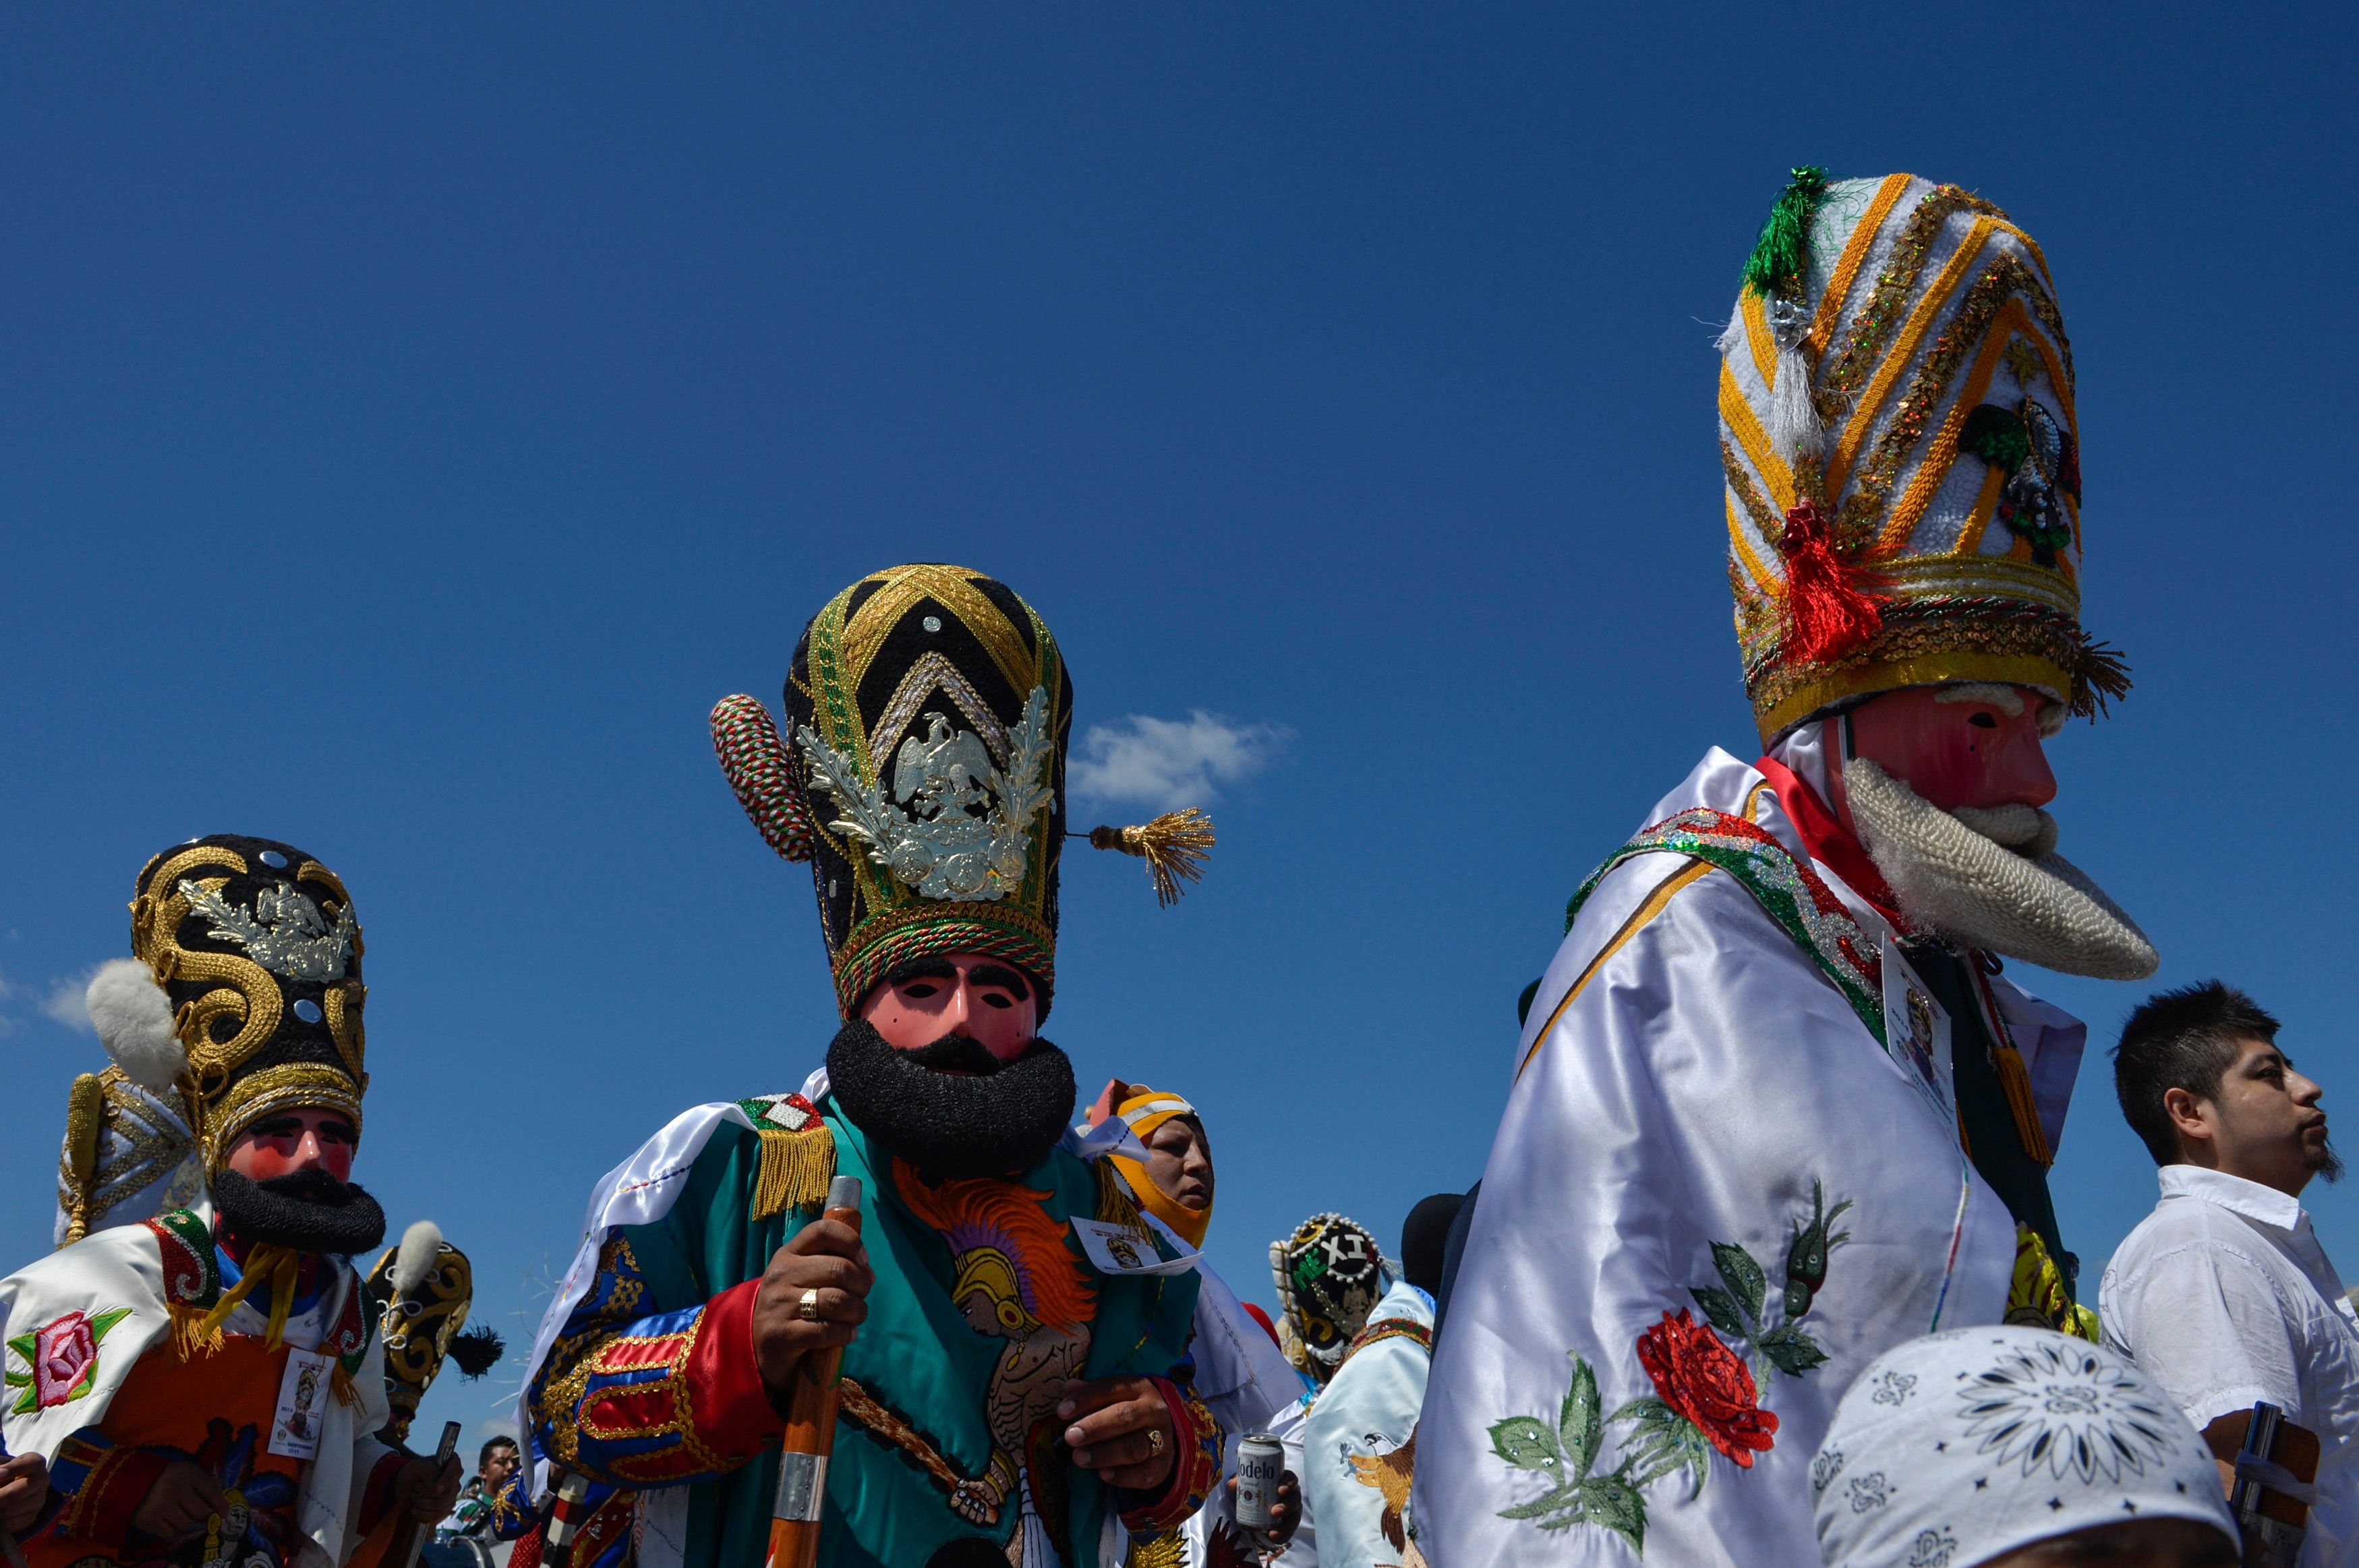 Costumed revelers dance through the streets of Philadelphia for the Carnaval de Puebla on April 27, 2014.